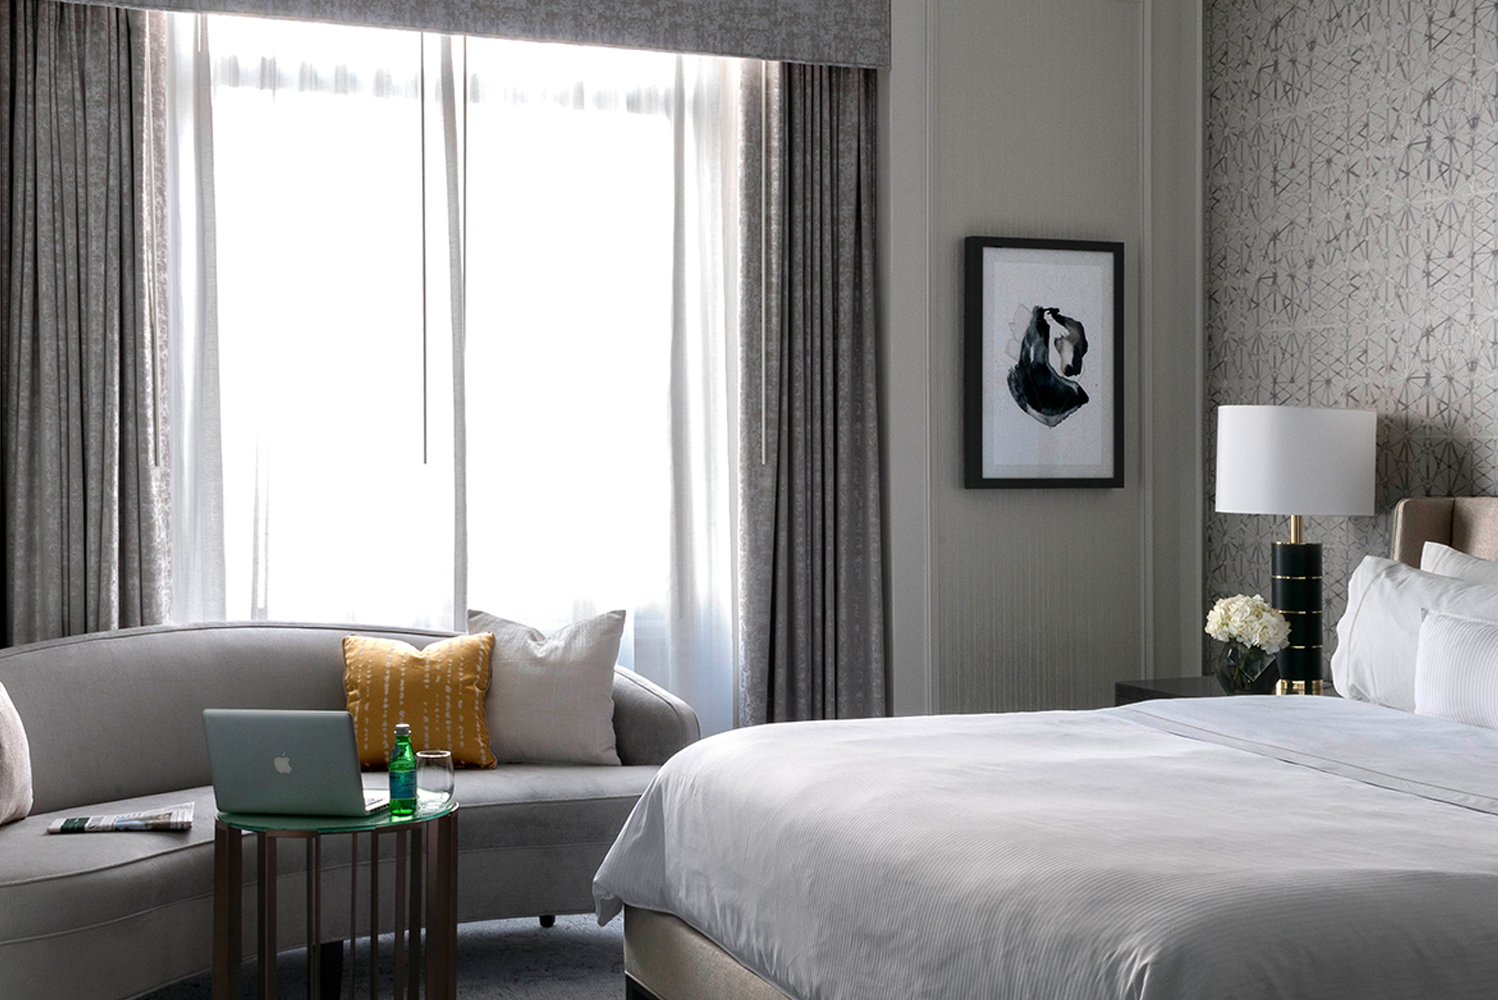 Located in San Francisco's Union Square, the hotel is nestled within a landmark building with 613 guestrooms and suites.